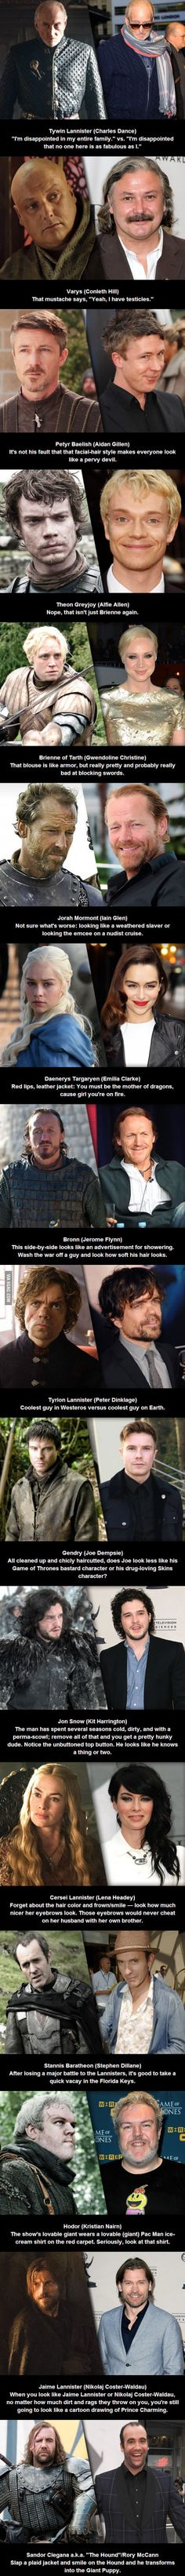 Game of Thrones: Actors vs Characters